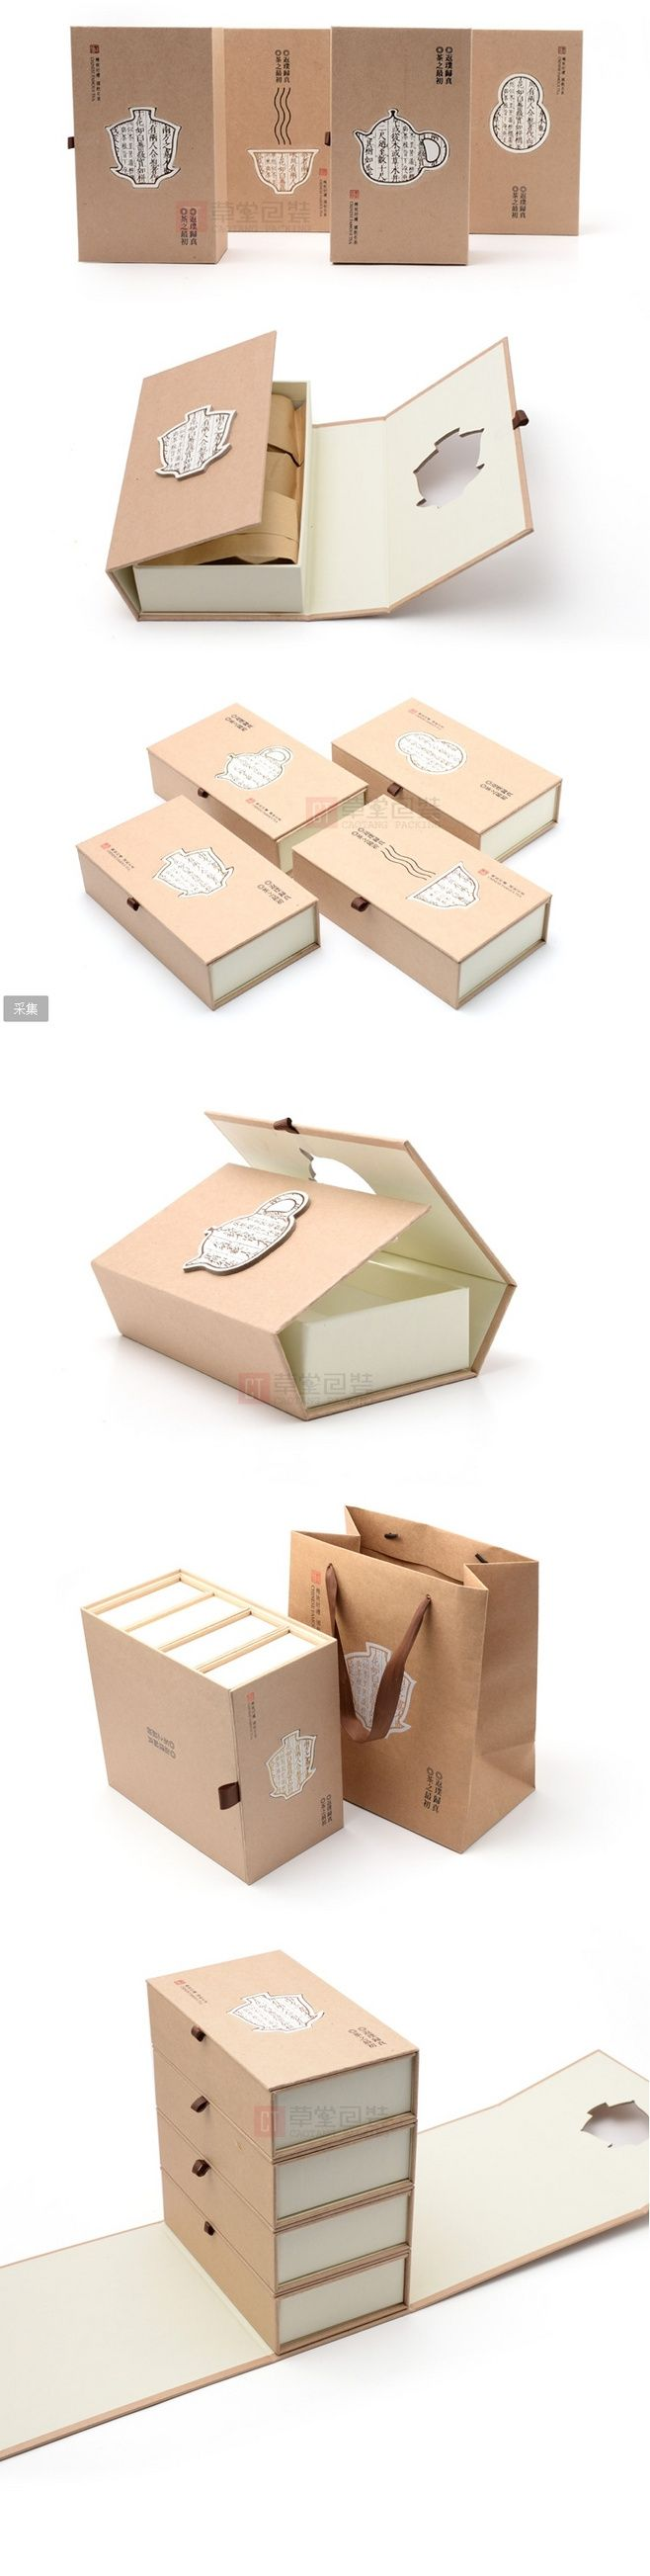 Clever packaging. look how the cutout overlays the shapes when it's closed. PD